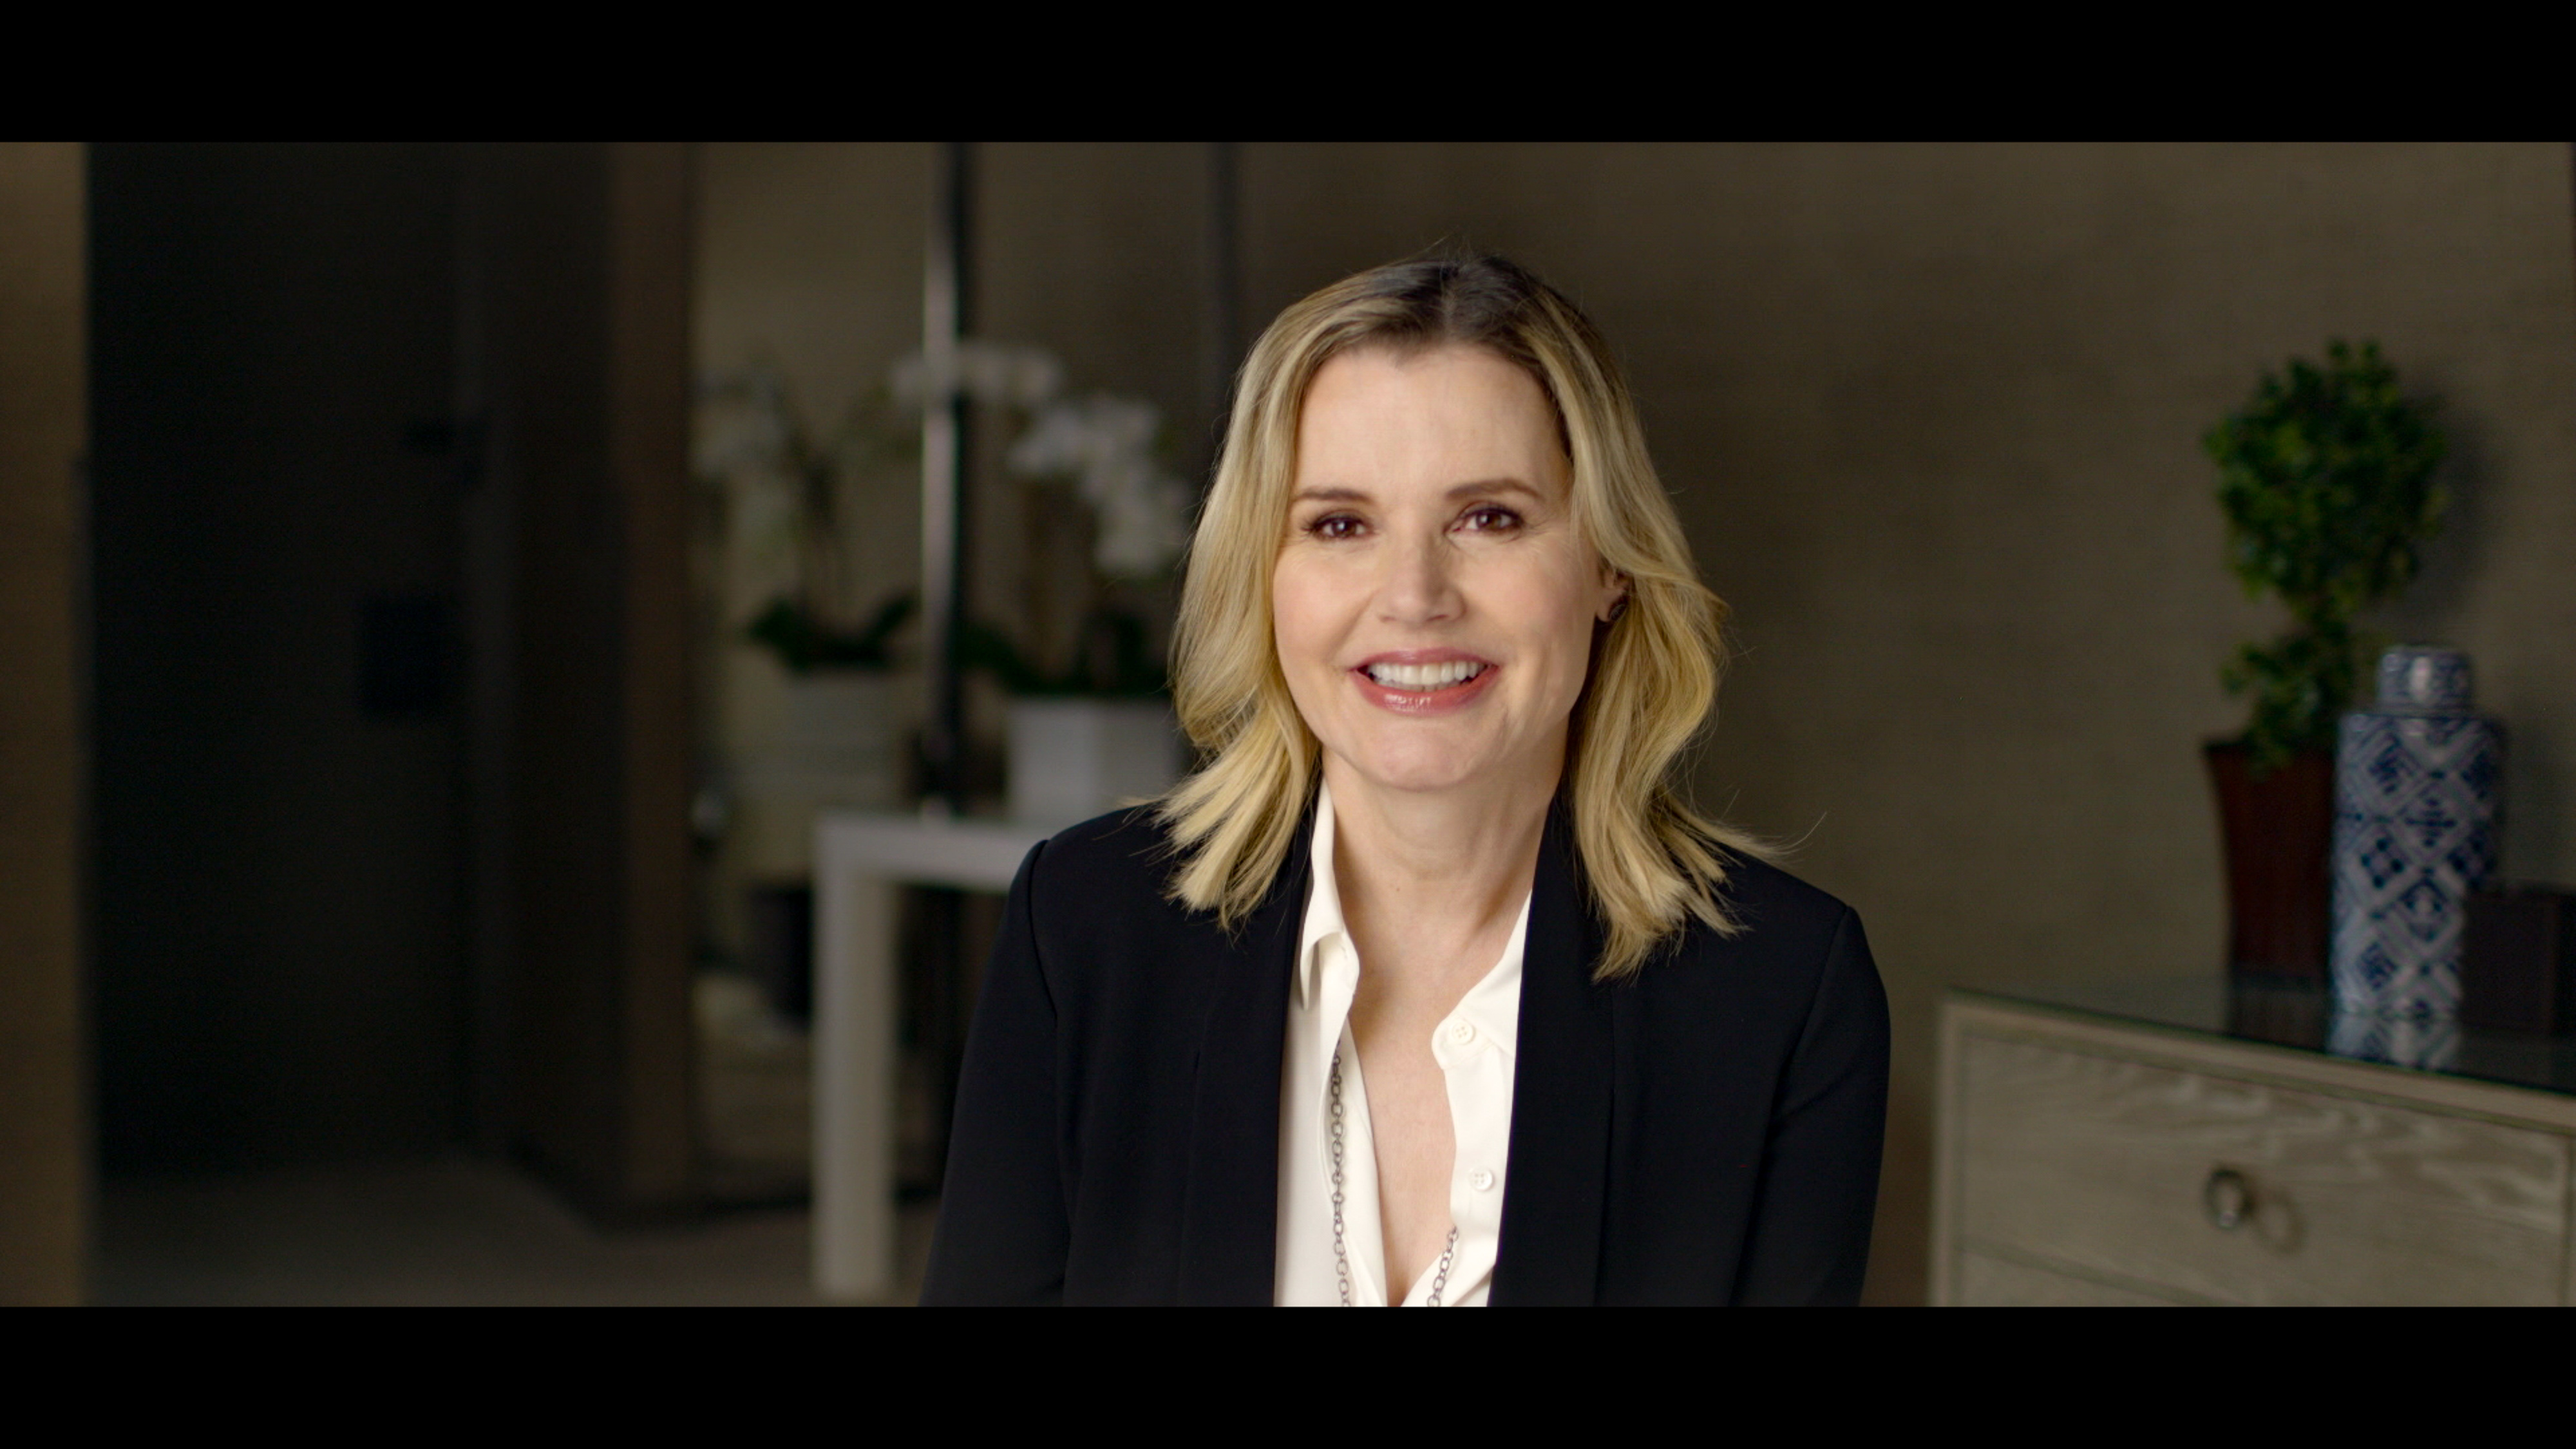 """Geena Davis, an executive producer of """"This Changes Everything,"""" appears in the documentary to discuss her experiences as an actress and the findings of her think tank, which is devoted to media gender issues."""